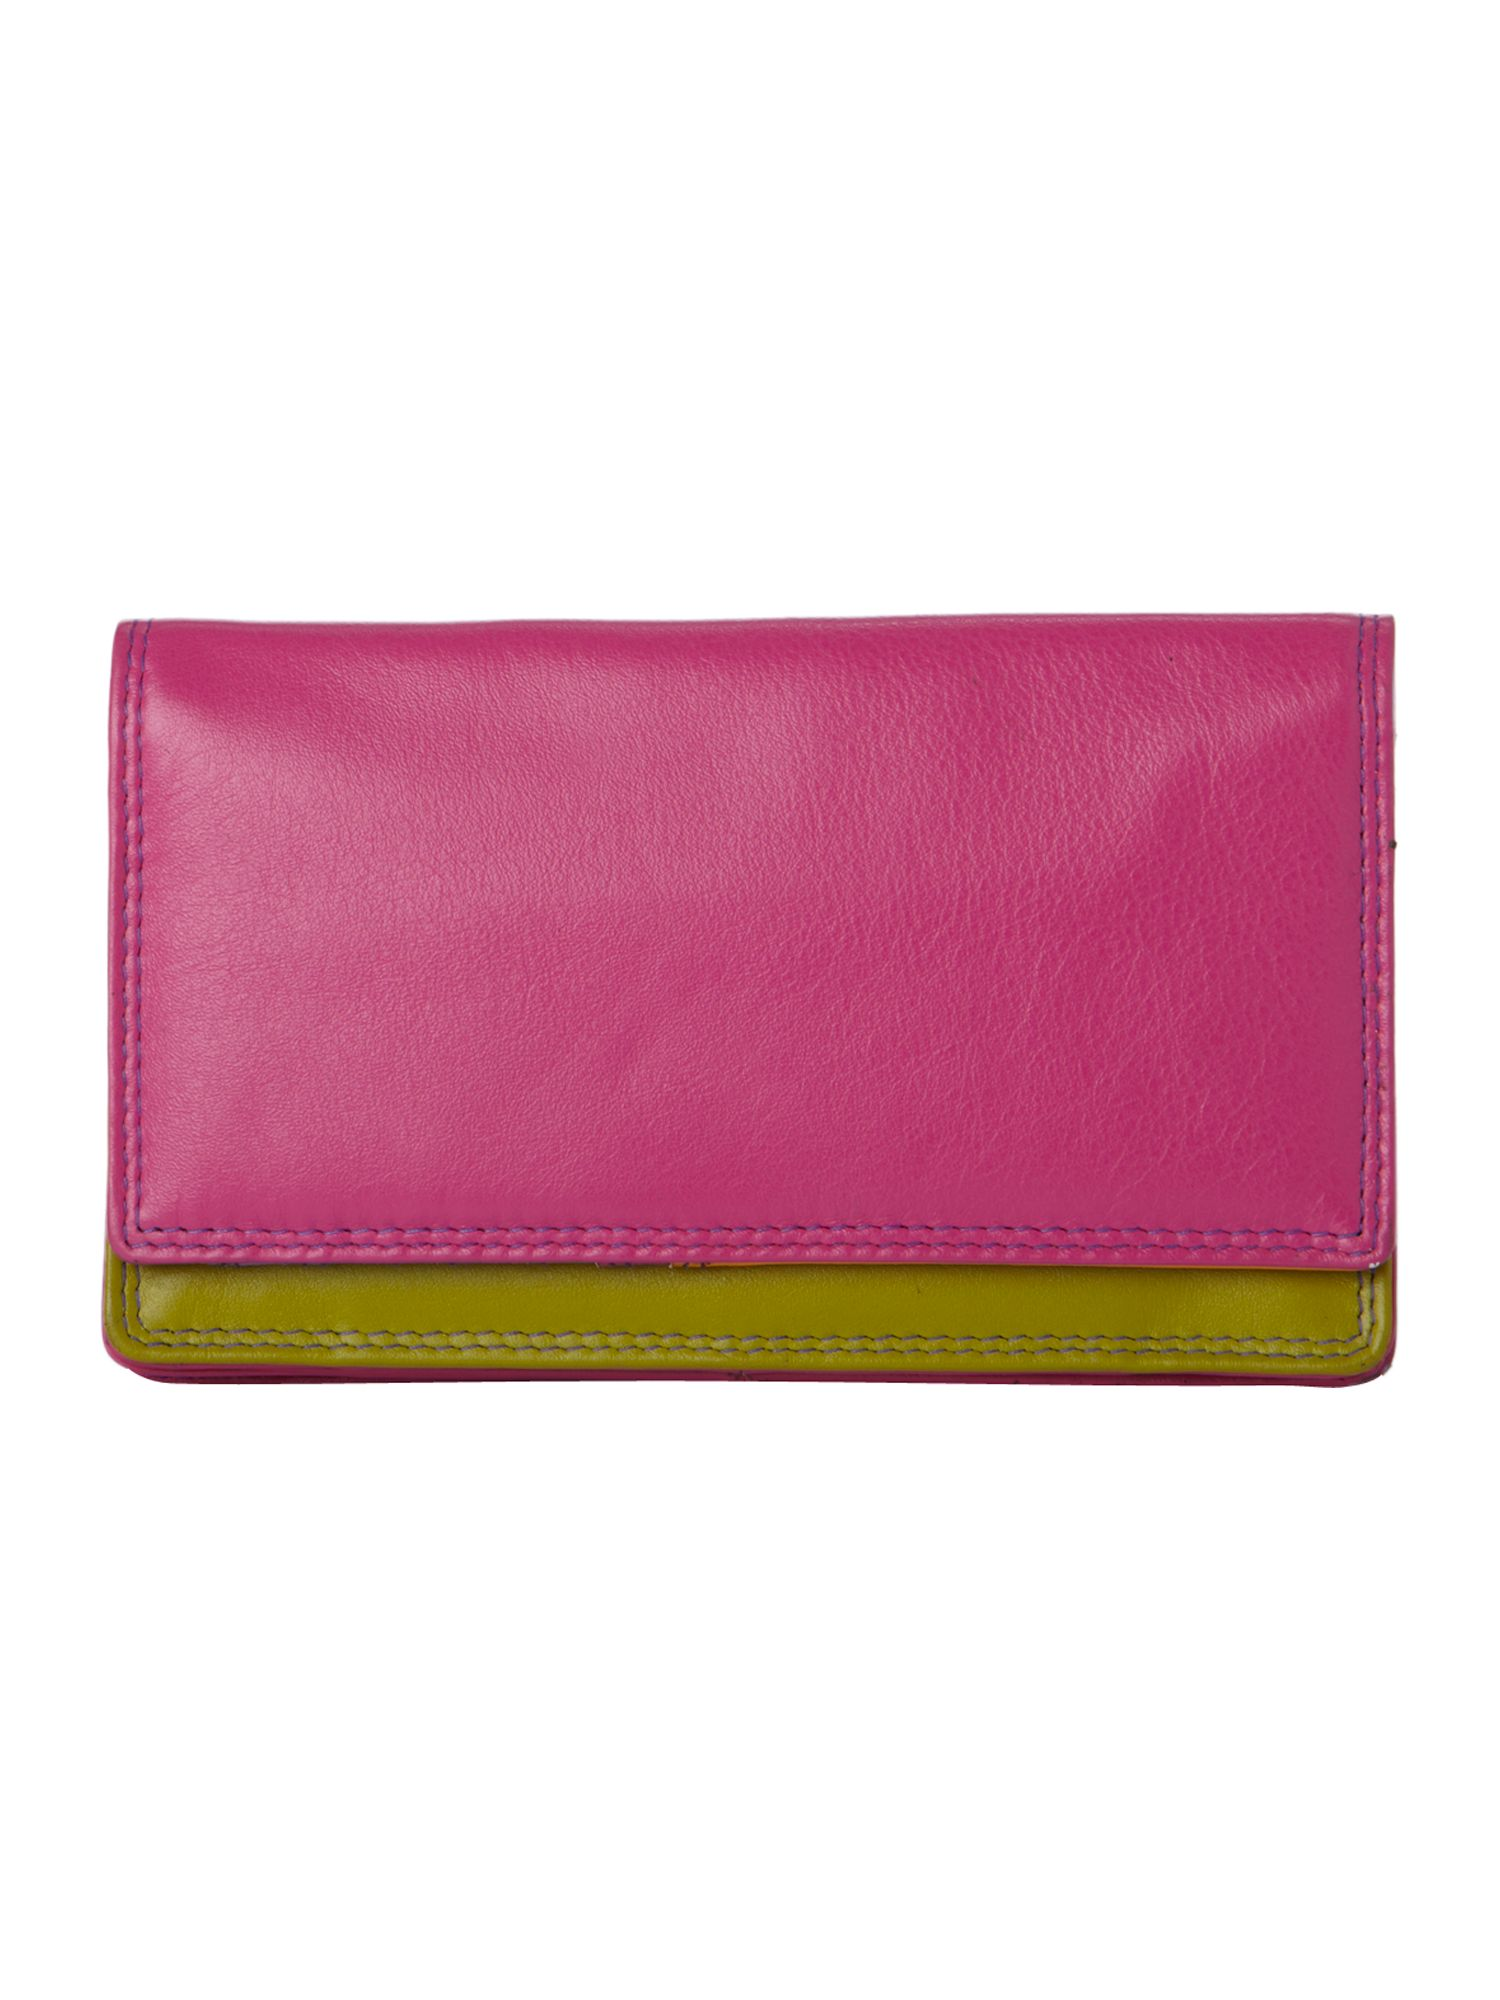 Bombay flap over continental purse